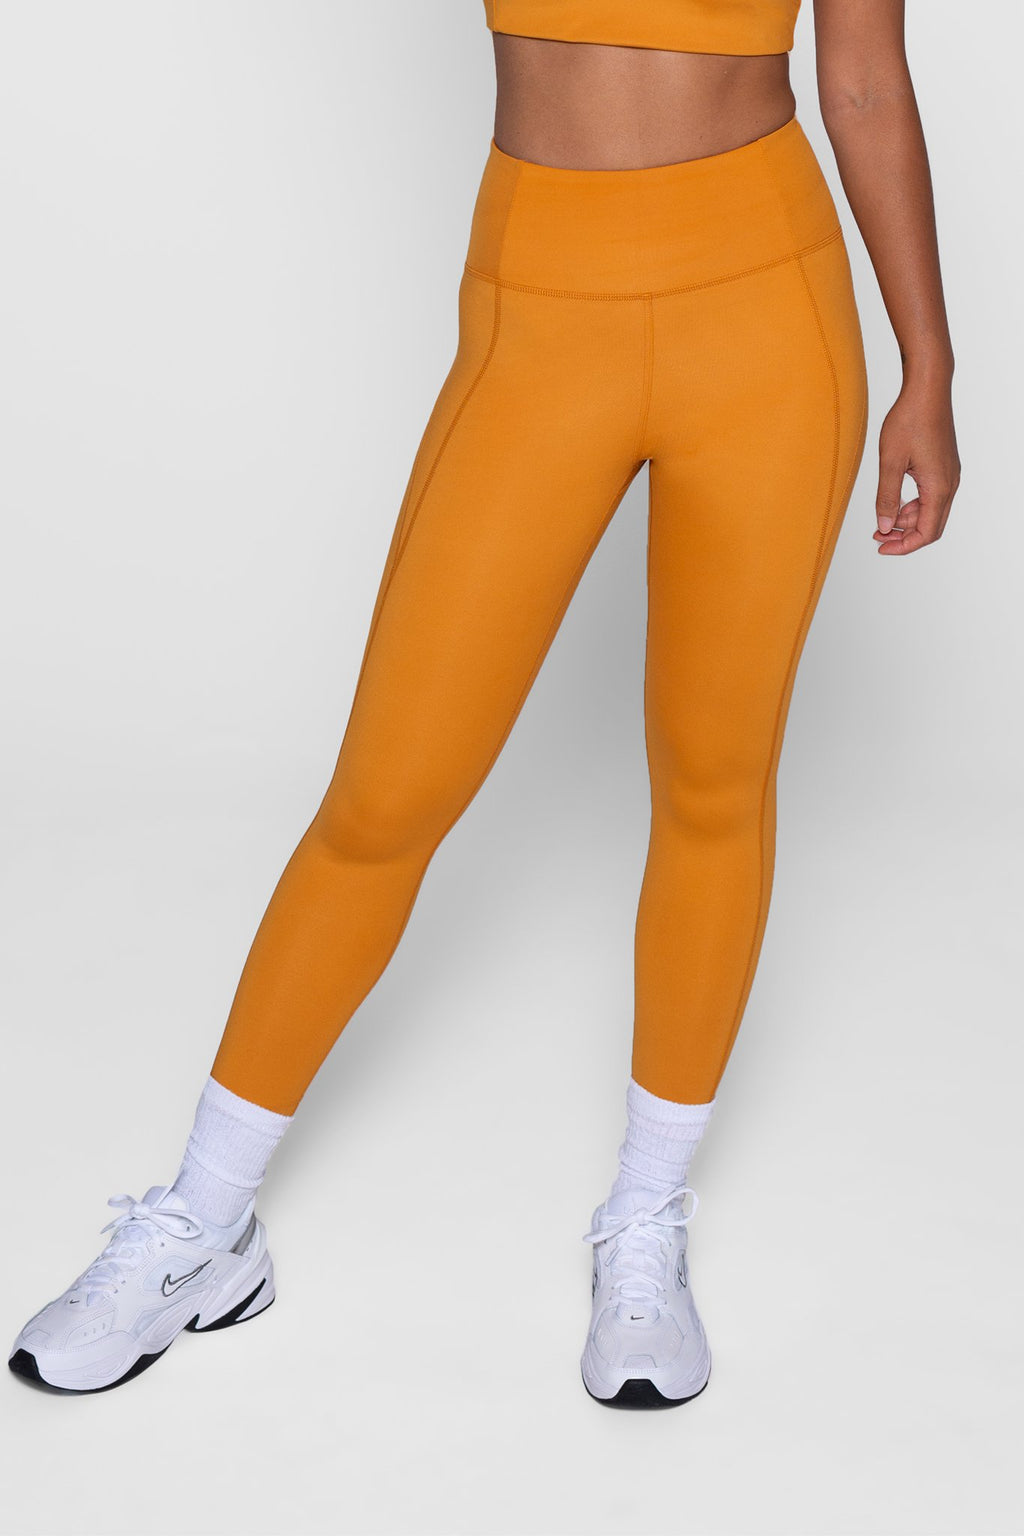 Honey High-Rise Compressive Legging